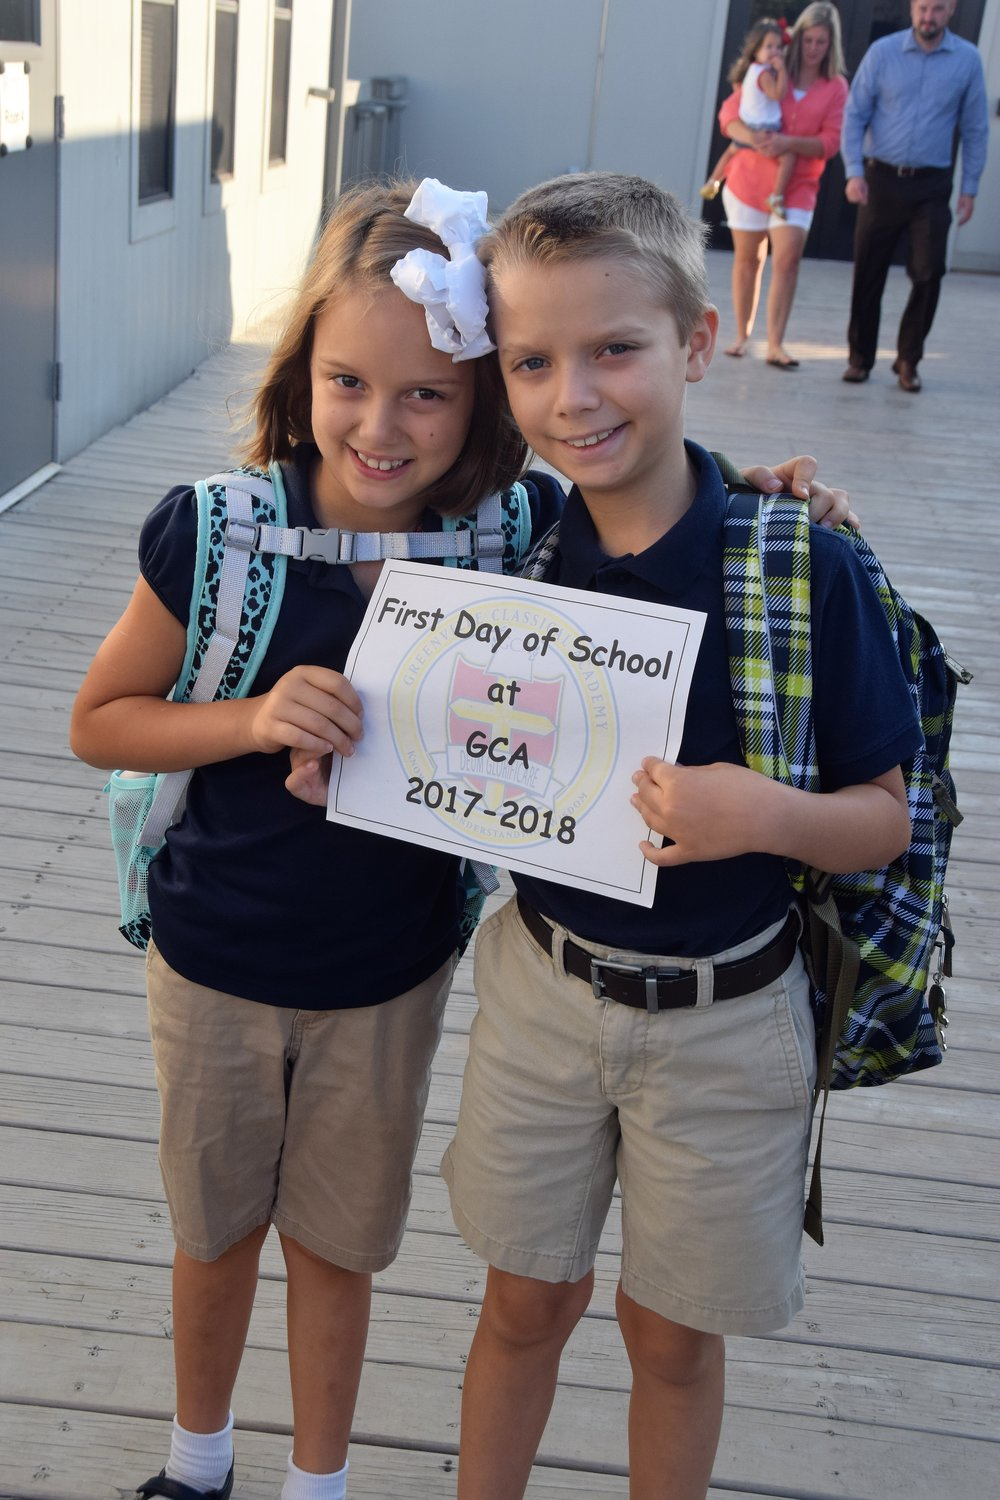 Lower School 1st Day of School 8-23-17 (10).JPG